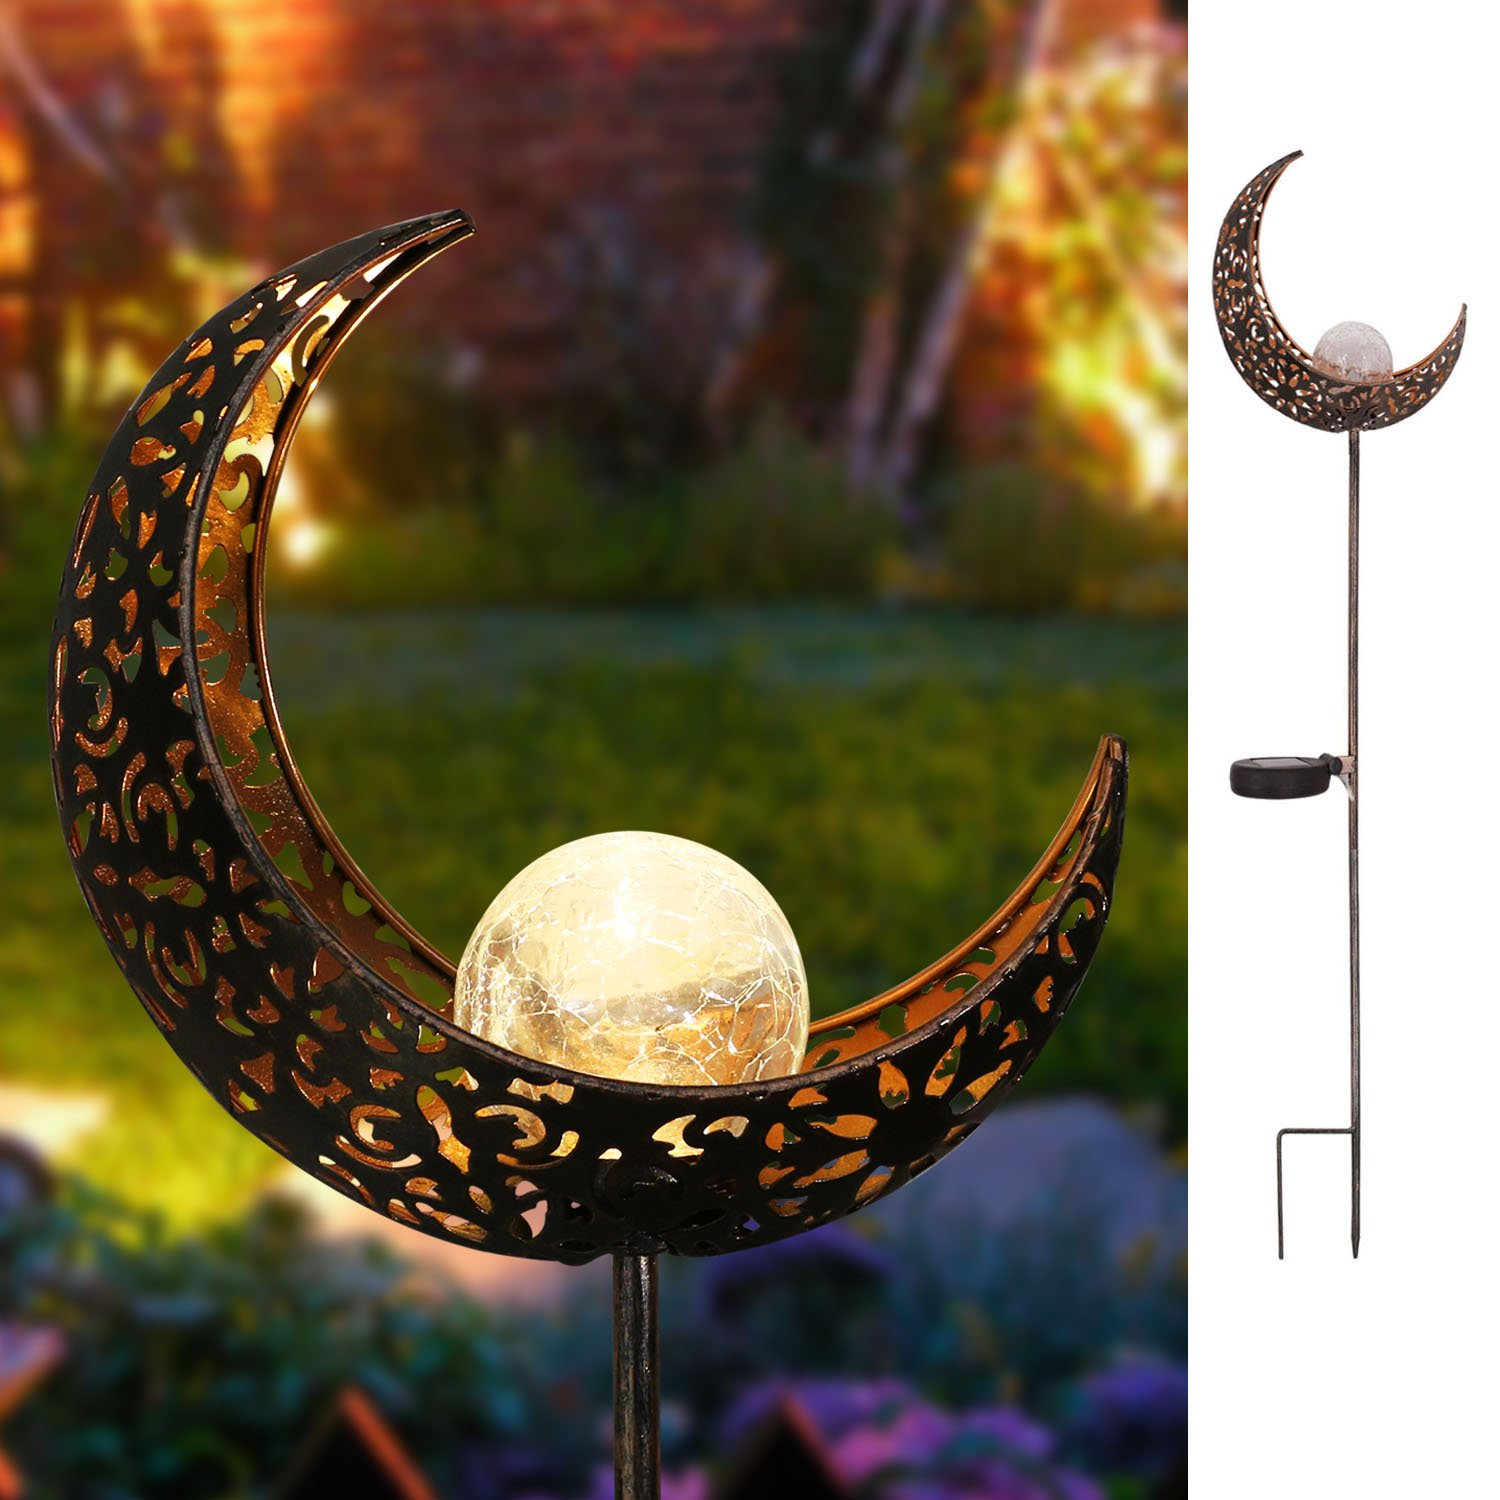 Homeimpro Garden Solar Lights Pathway Outdoor Moon Crackle Glass Globe Stake Metal Lights,Waterproof Warm White LED for Lawn,Patio or Courtyard (Bronze) by Homeimpro